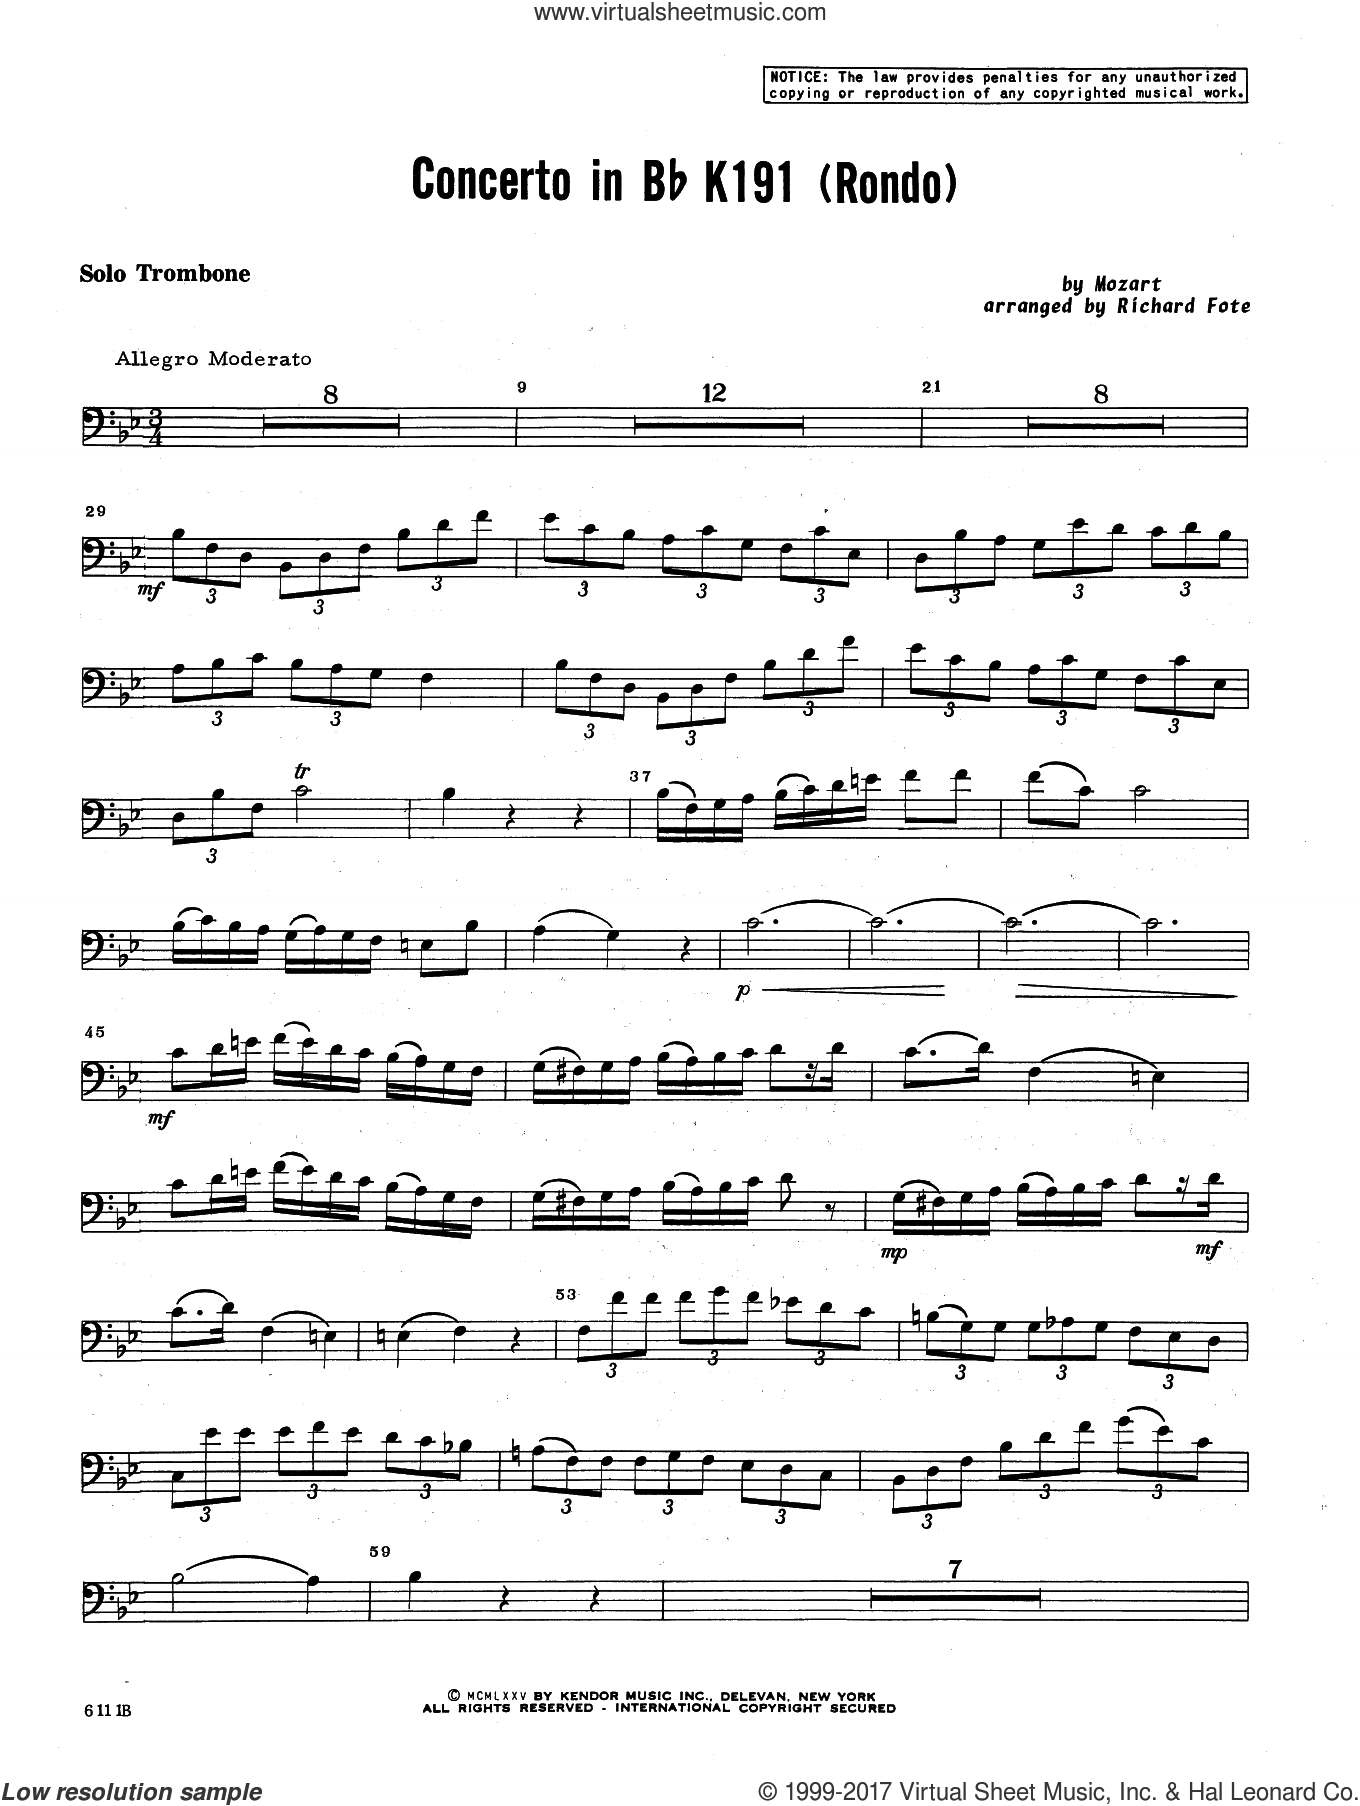 Concerto In Bb K 191 (Rondo) (complete set of parts) sheet music for trombone and piano by Wolfgang Amadeus Mozart and Richard Fote, classical score, intermediate